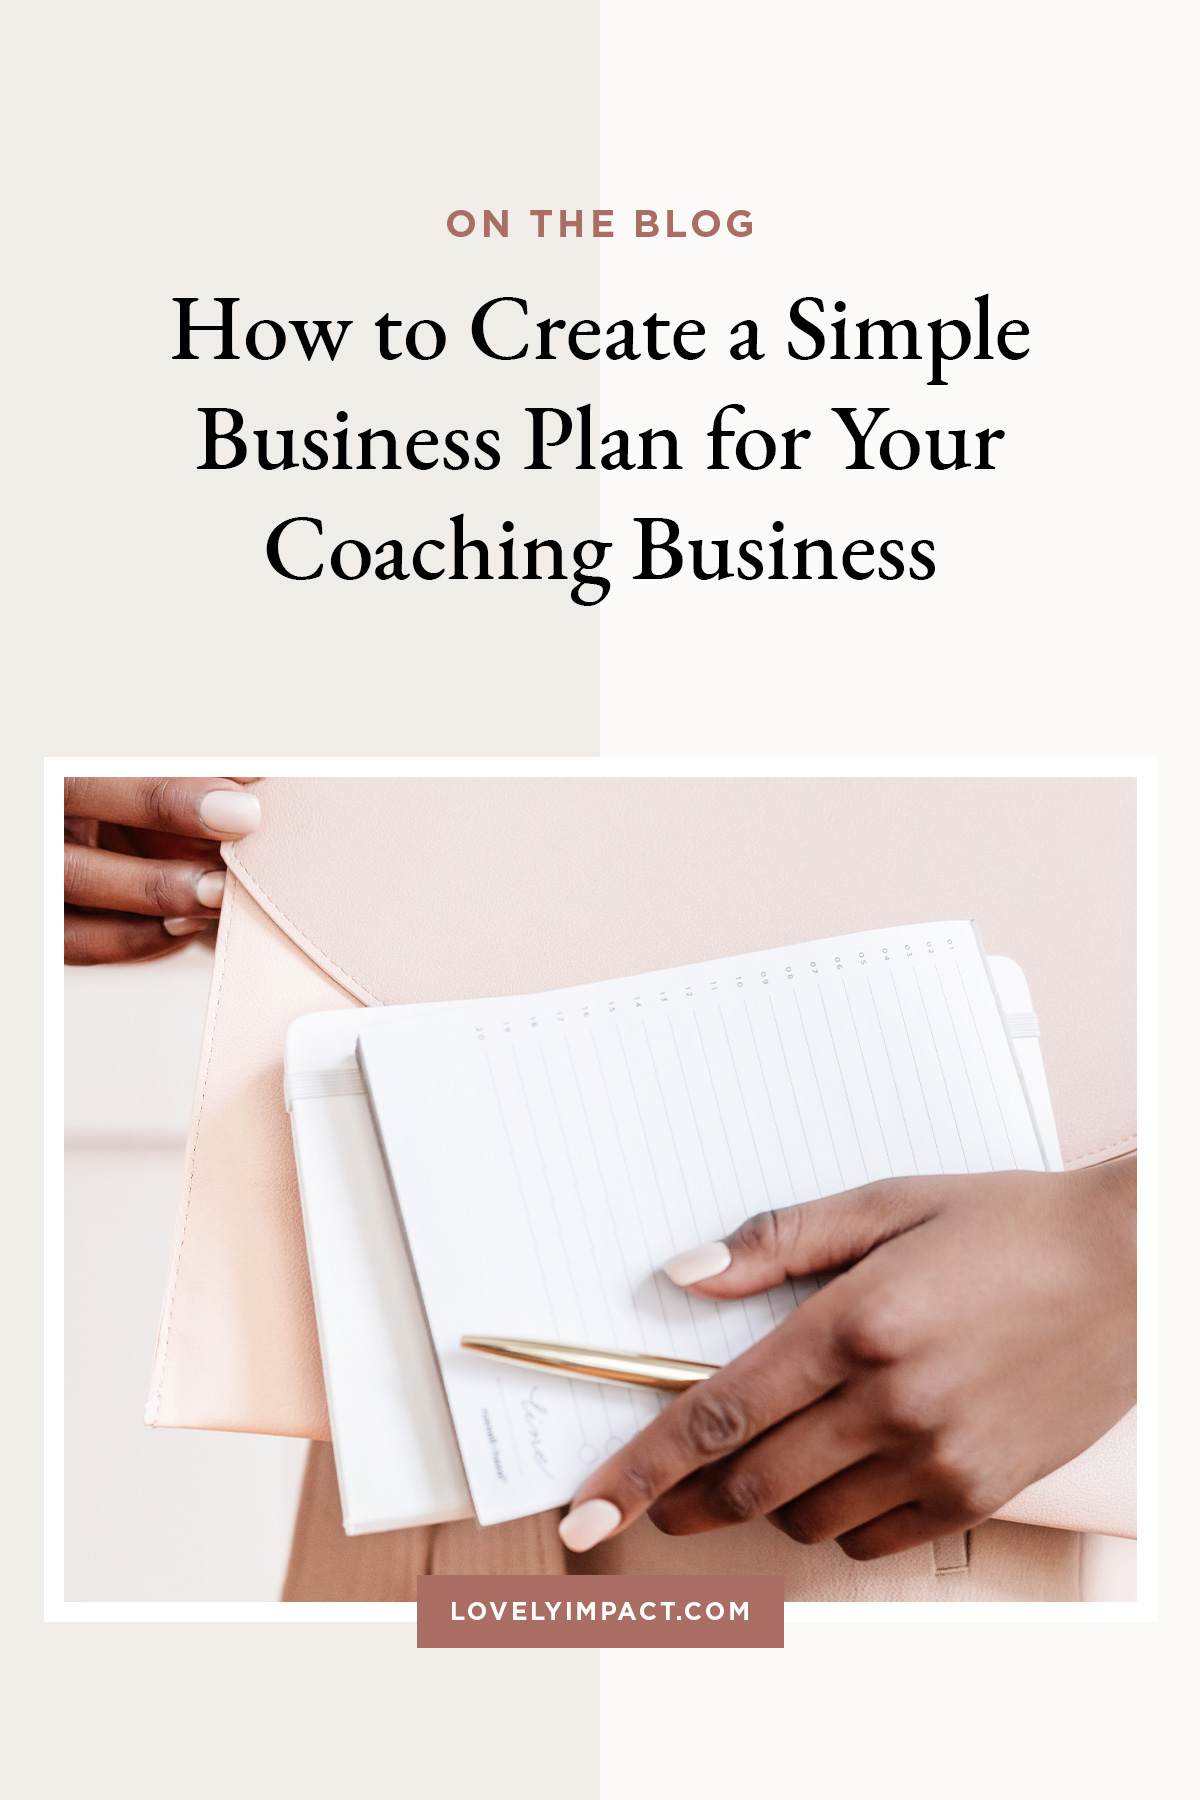 How to Create a Simple Business Plan for Your Coaching Business